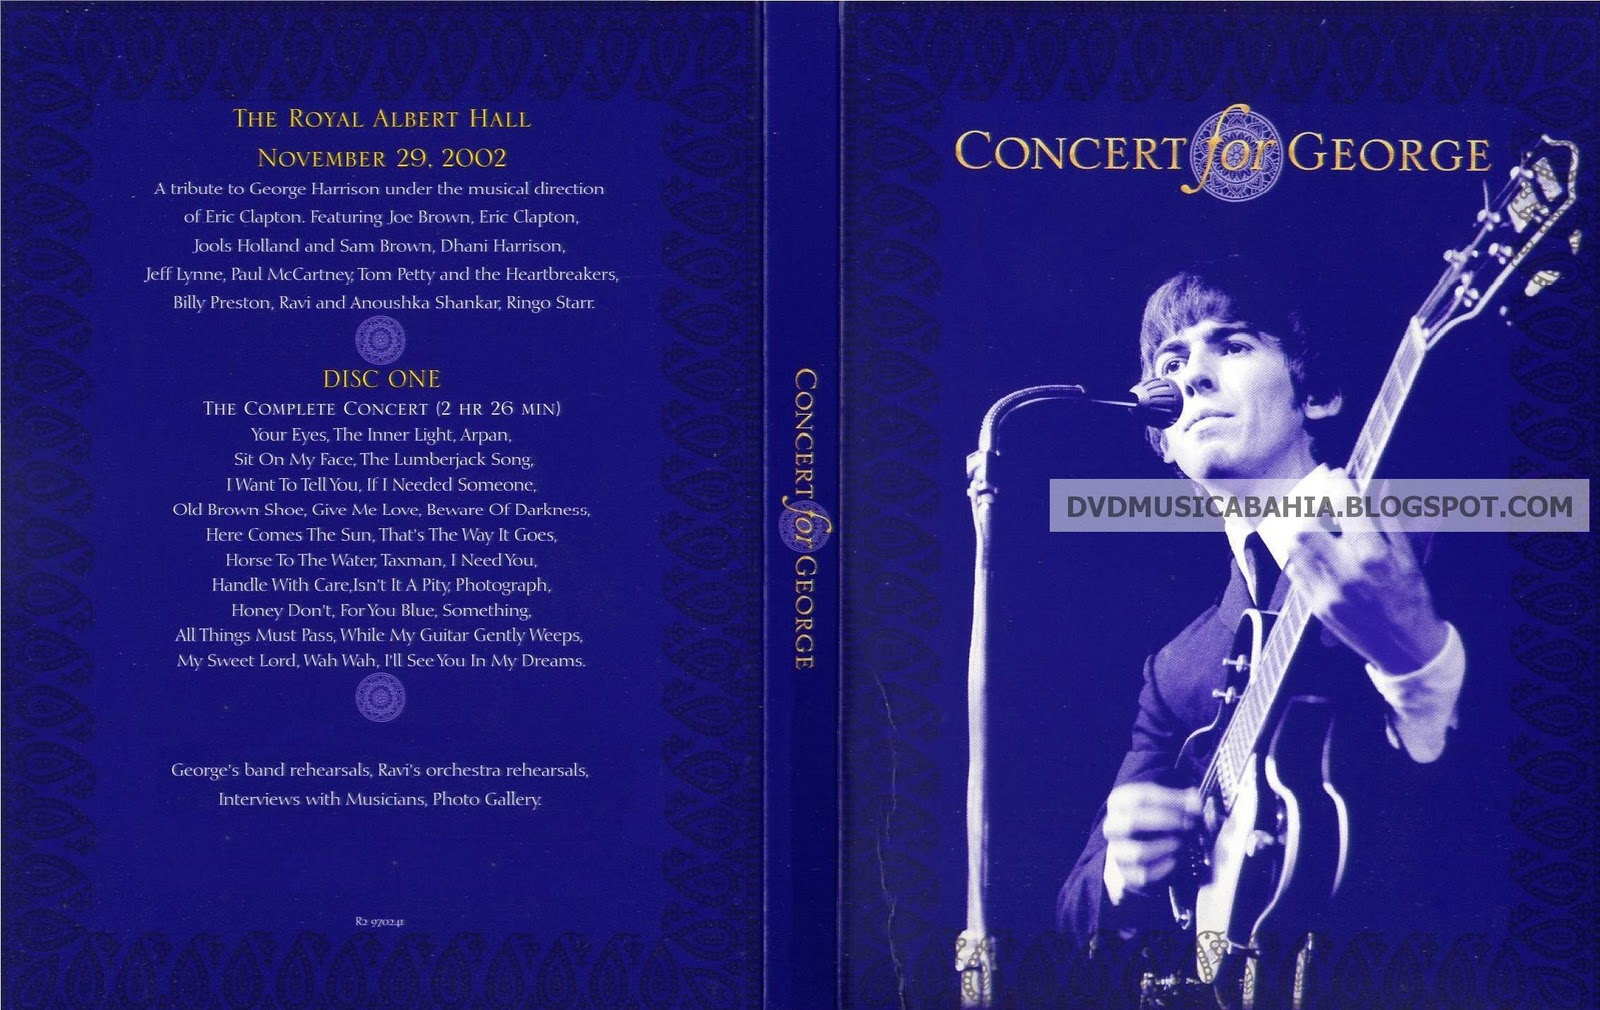 Concert For George 2003 : los mejores dvd de musica y mas george harrison concert for george 2003 ~ Russianpoet.info Haus und Dekorationen